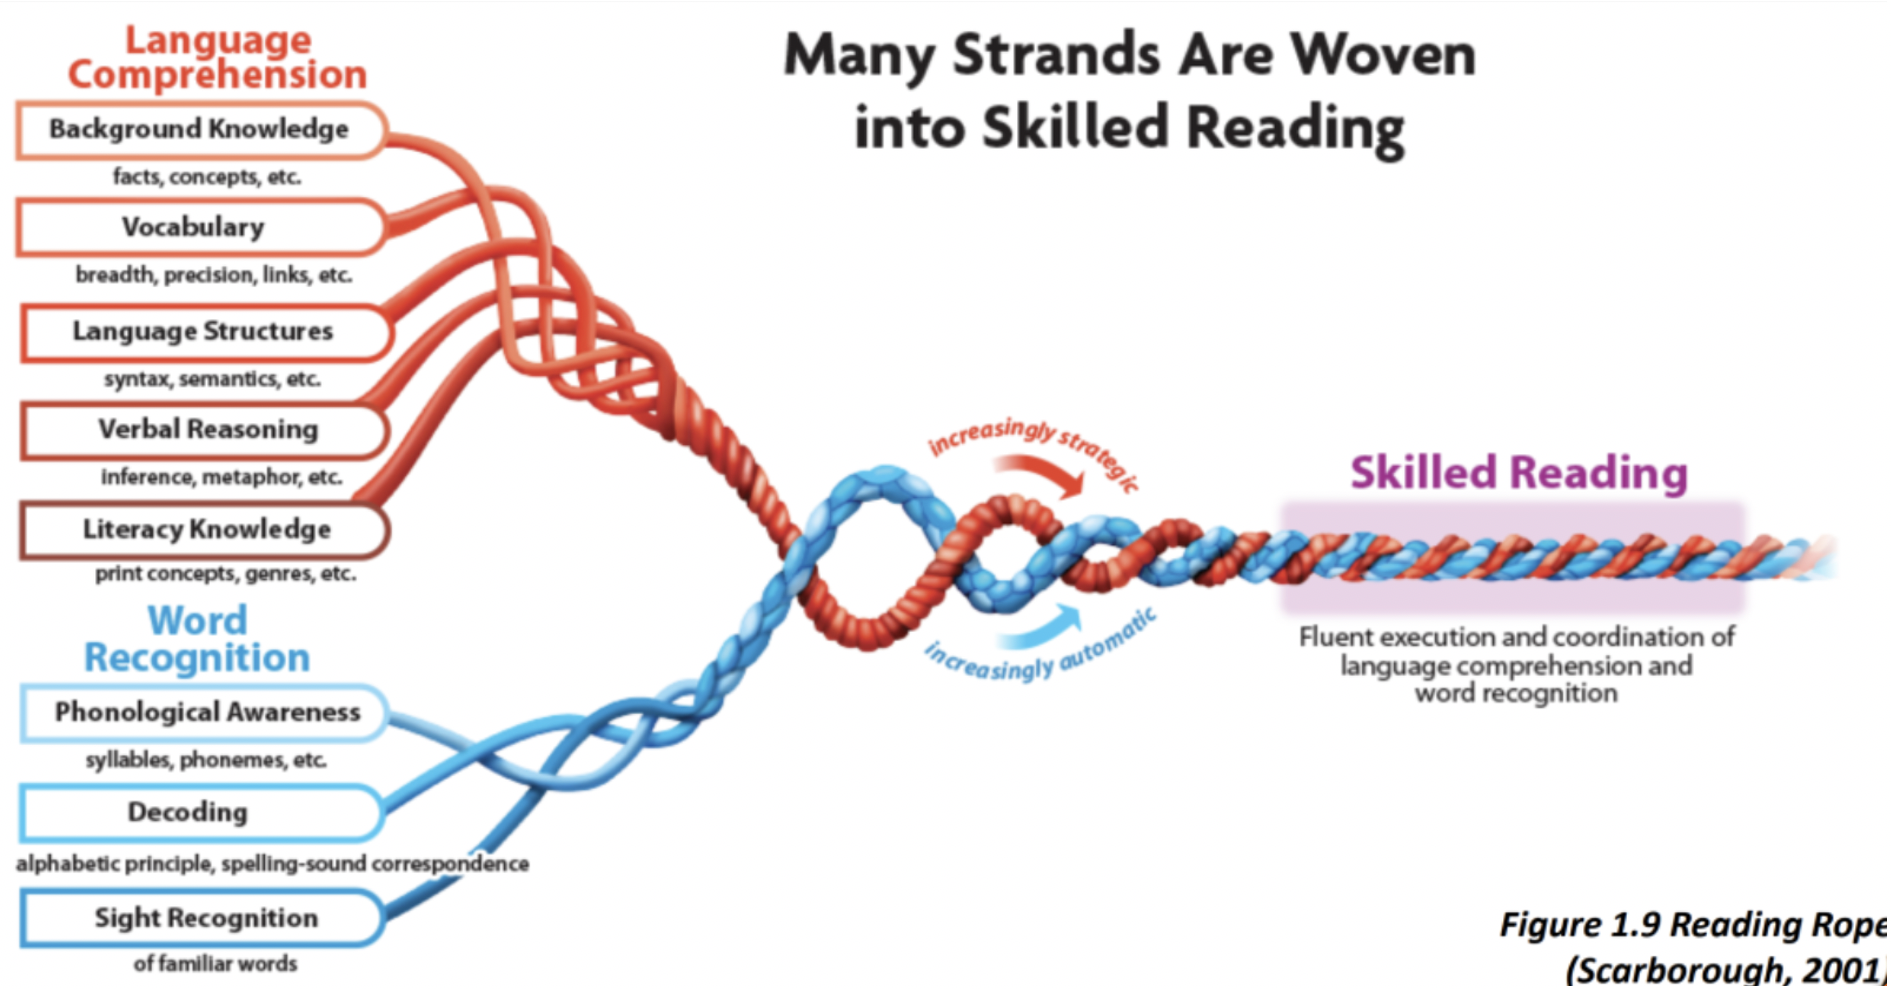 phonics-and-the-science-of-reading-scarborough-reading-rope